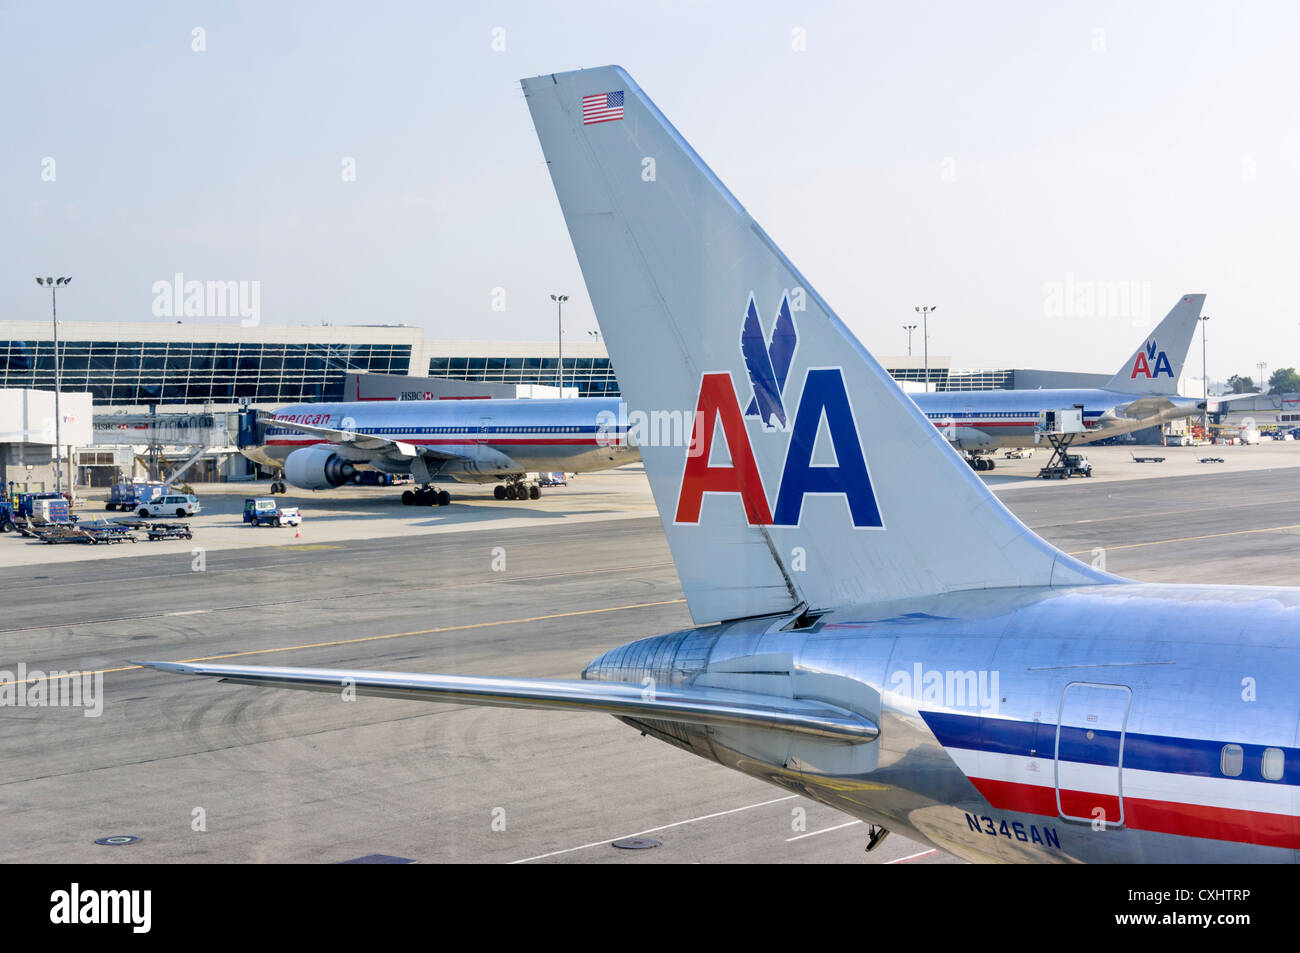 An American Airlines Boeing 767-300 aircraft parked at the gate at JFK Airport, New York, USA - Stock Image